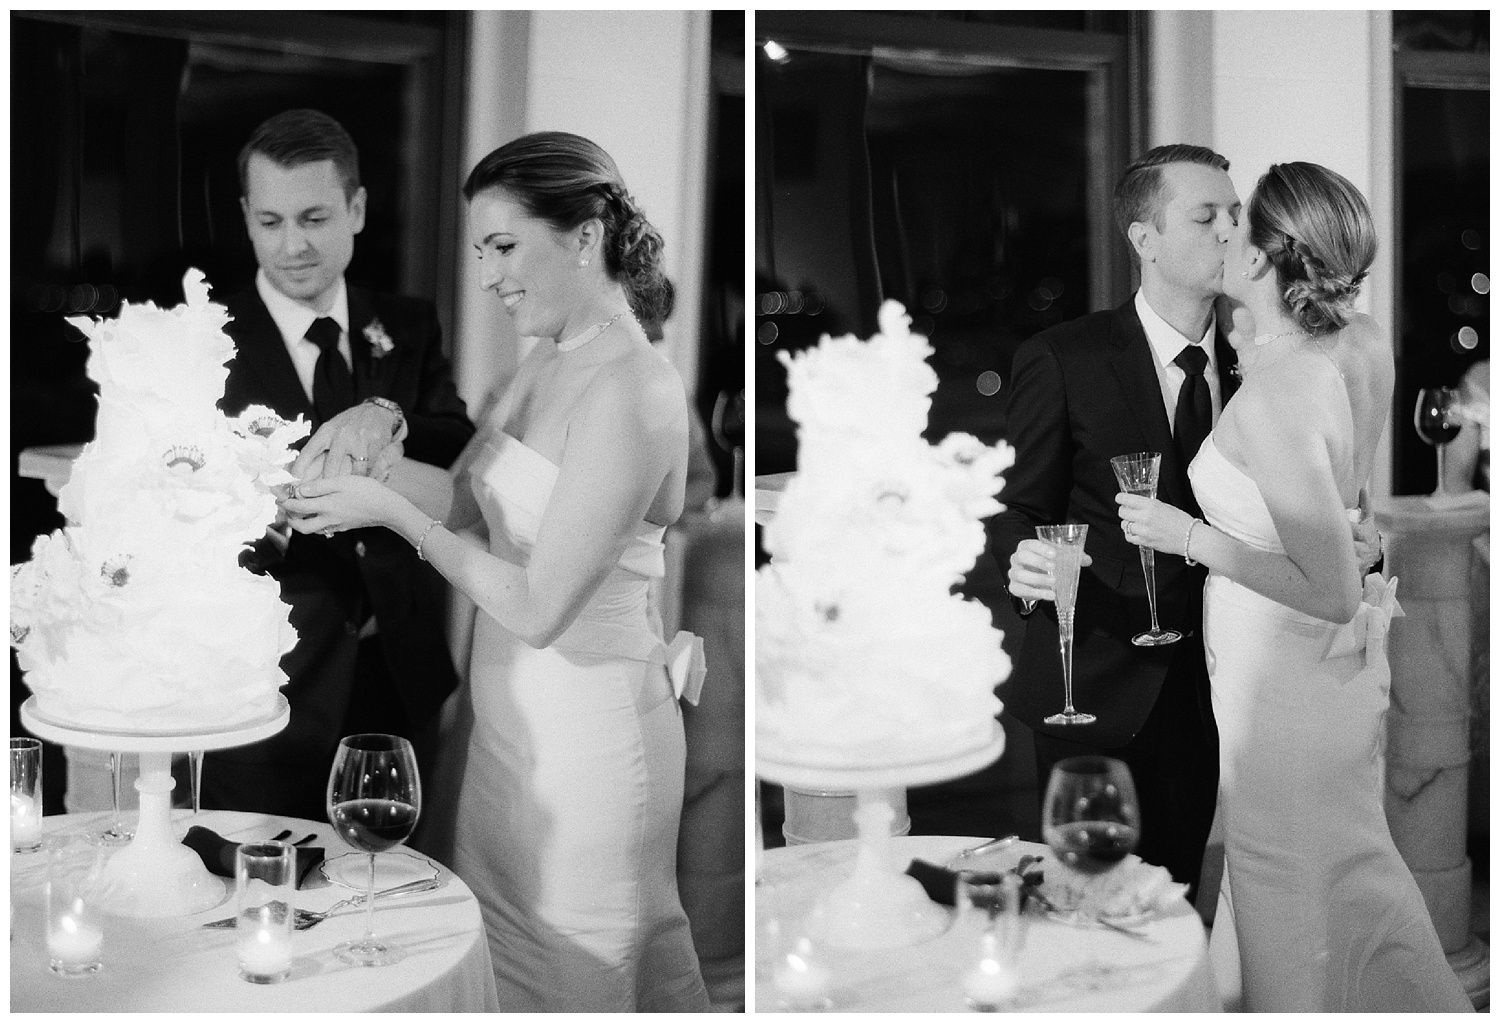 The couple cuts their white ruffled wedding cake and shares a kiss; Sylvie Gil Photography